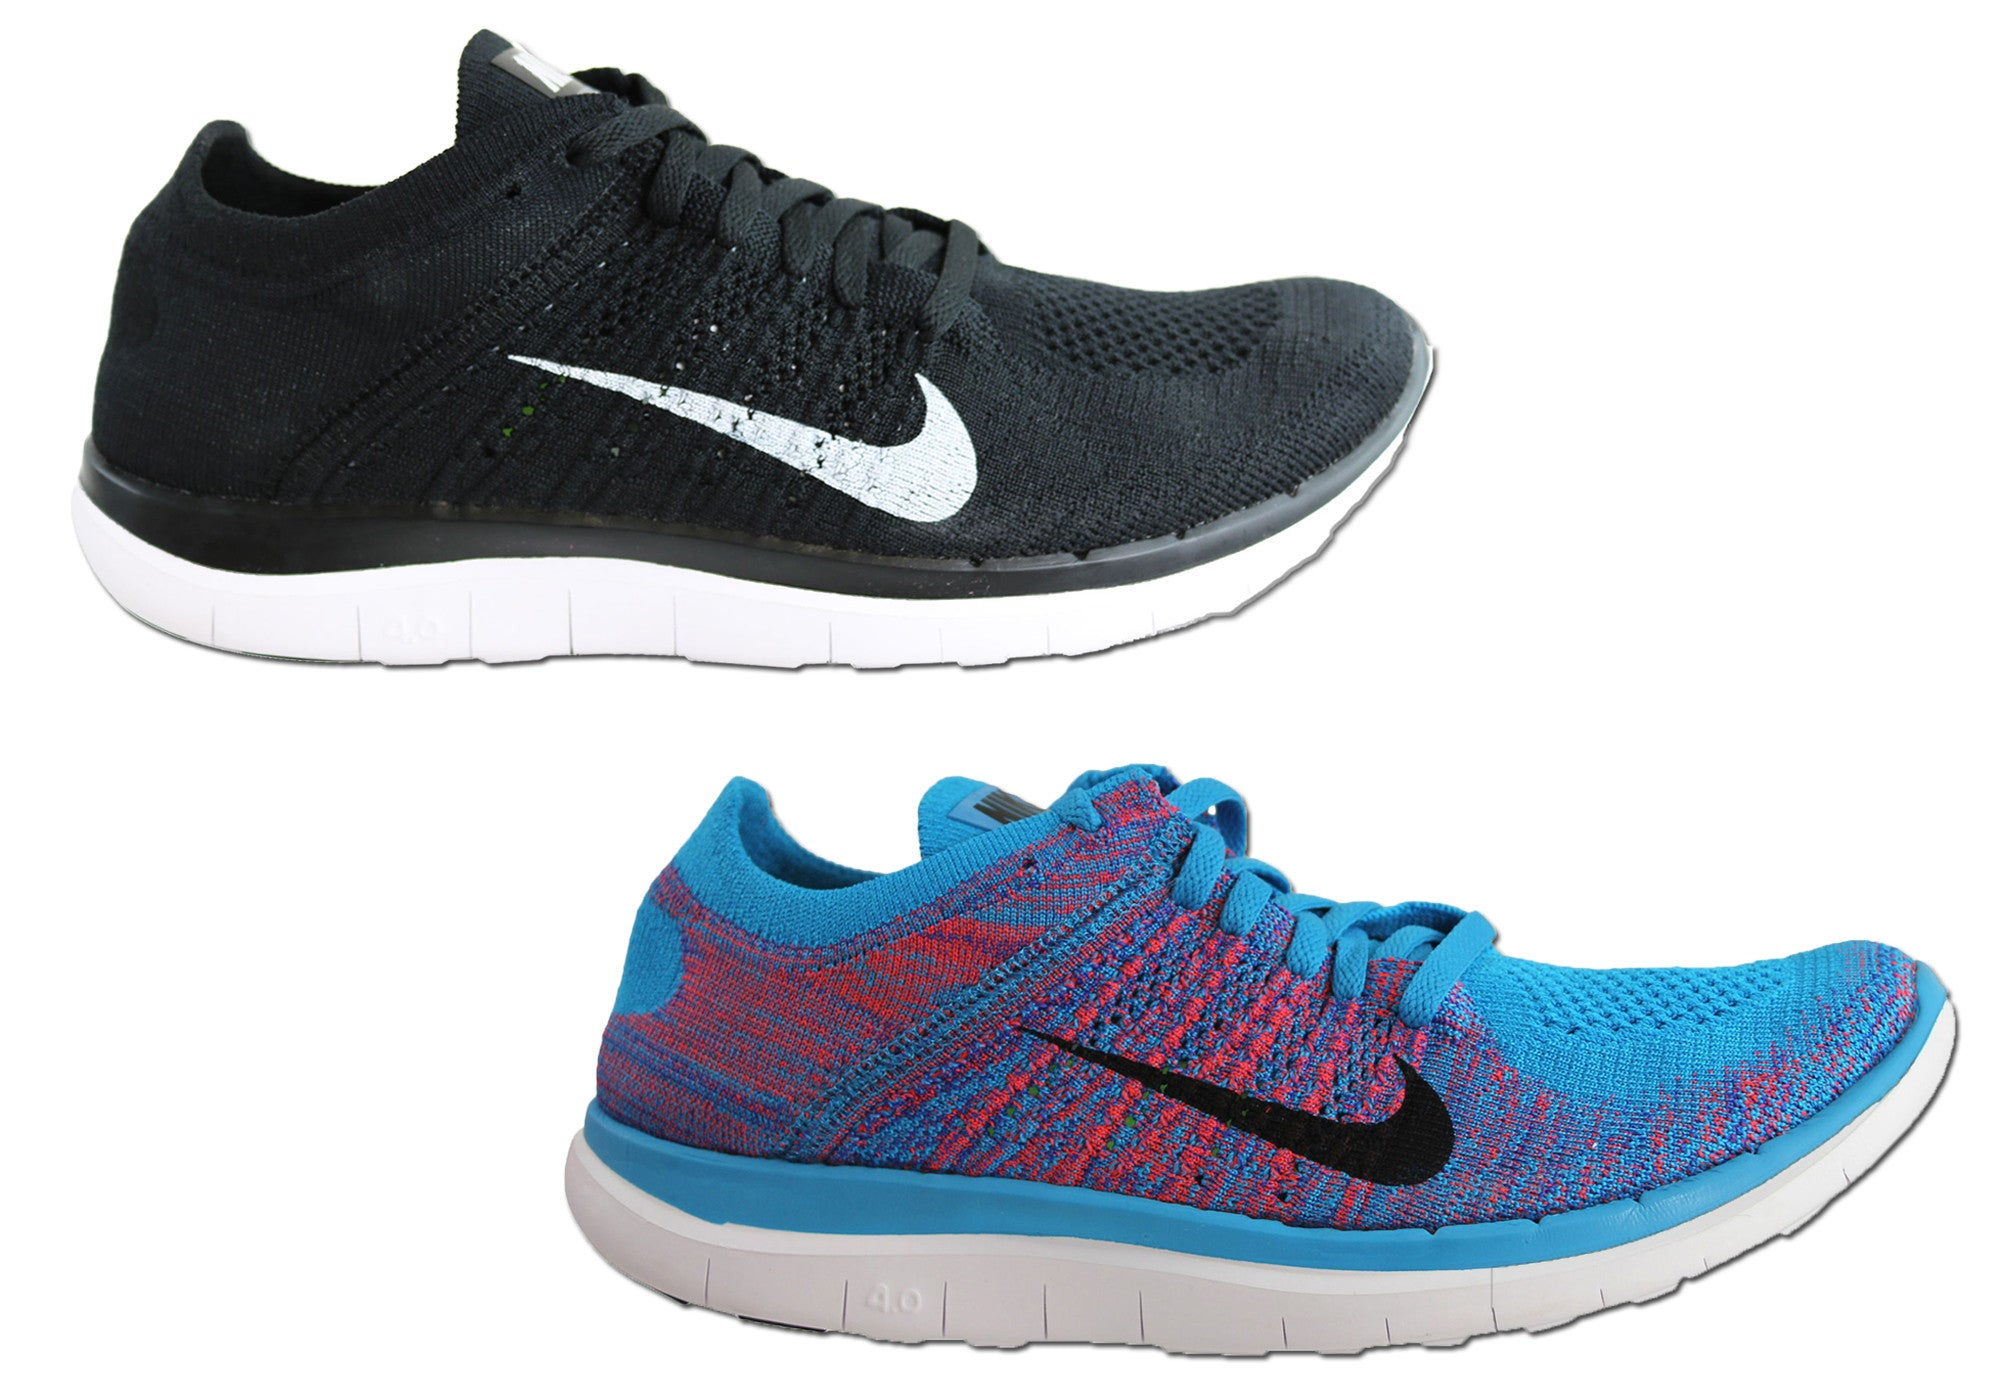 wholesale dealer dc0a2 1c7f7 ... NEW NIKE FREE FLYKNIT 4.0 MENS BAREFOOT FEEL RUNNING SHOES ...